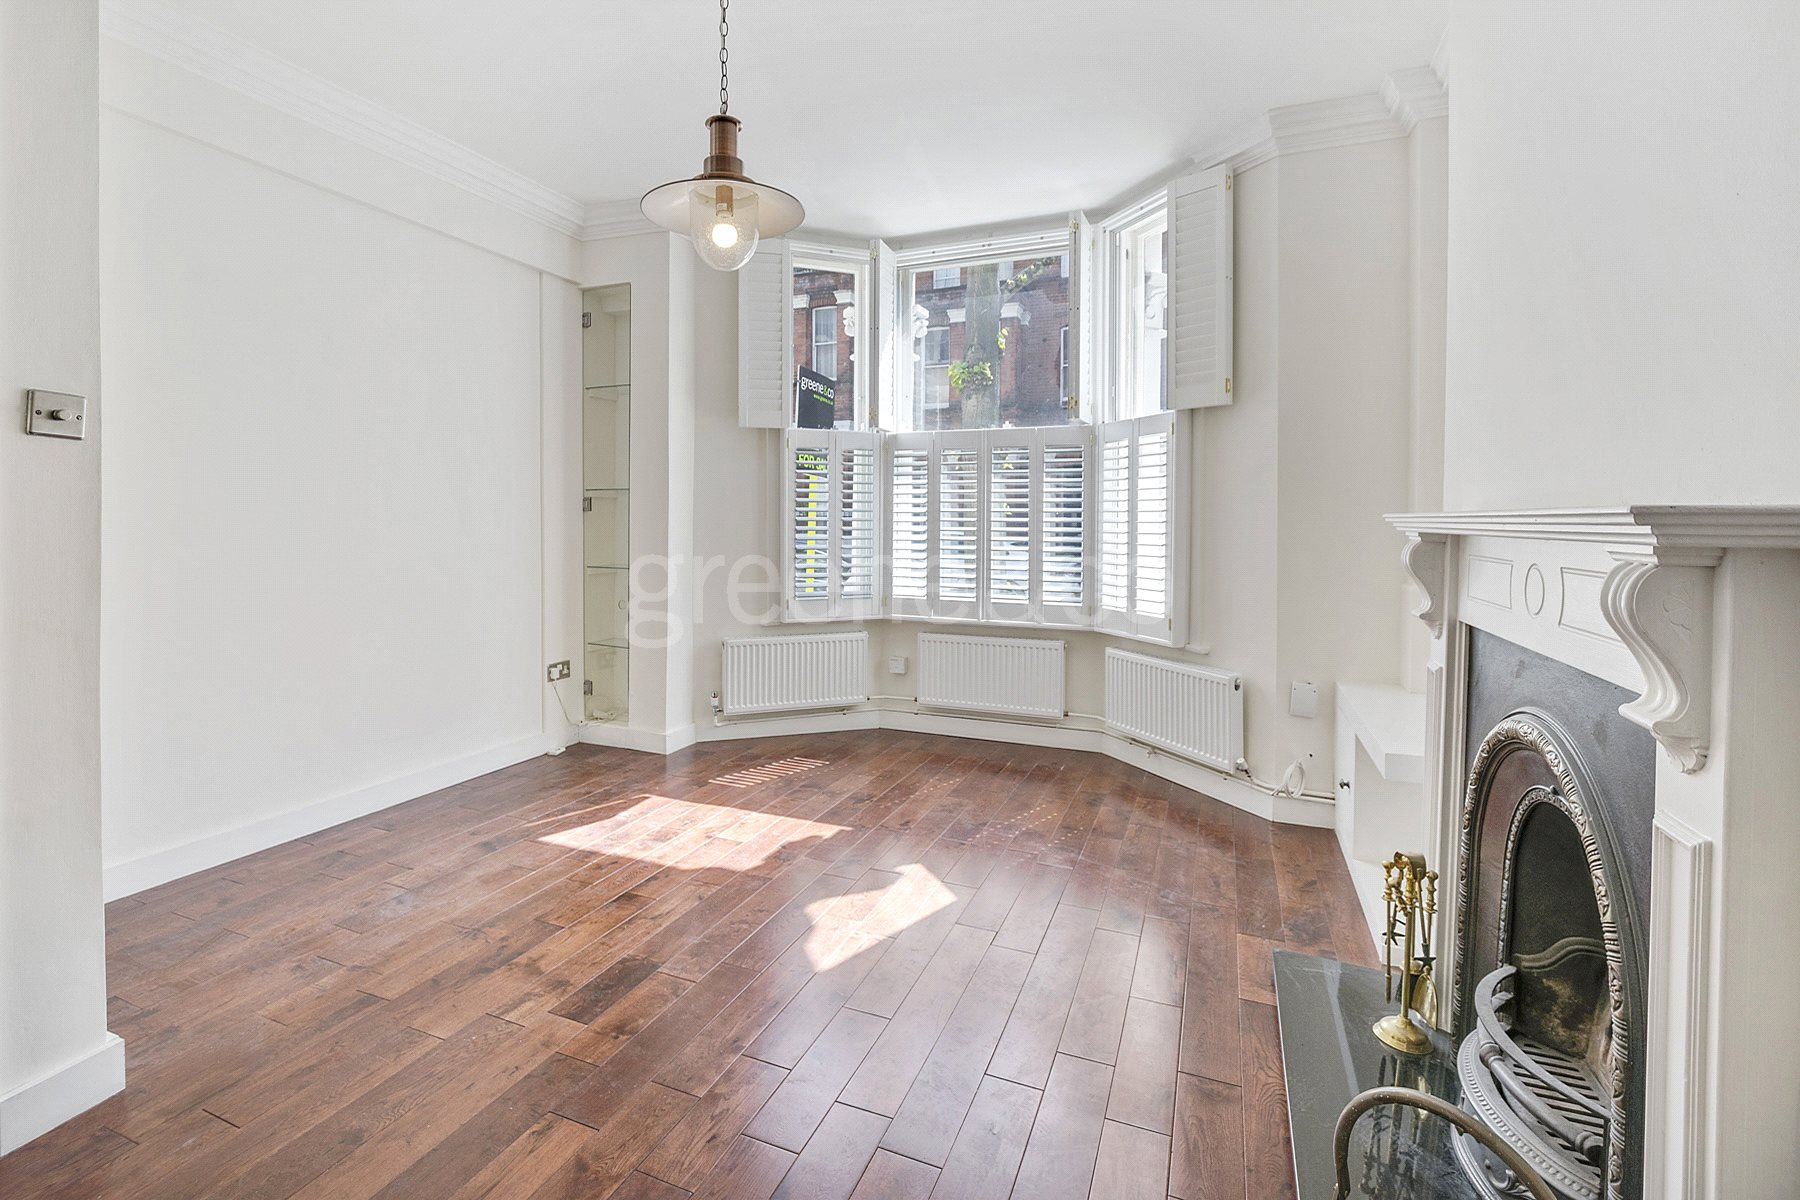 3 Bedrooms Flat for sale in Gascony Avenue, West Hampstead, London, NW6